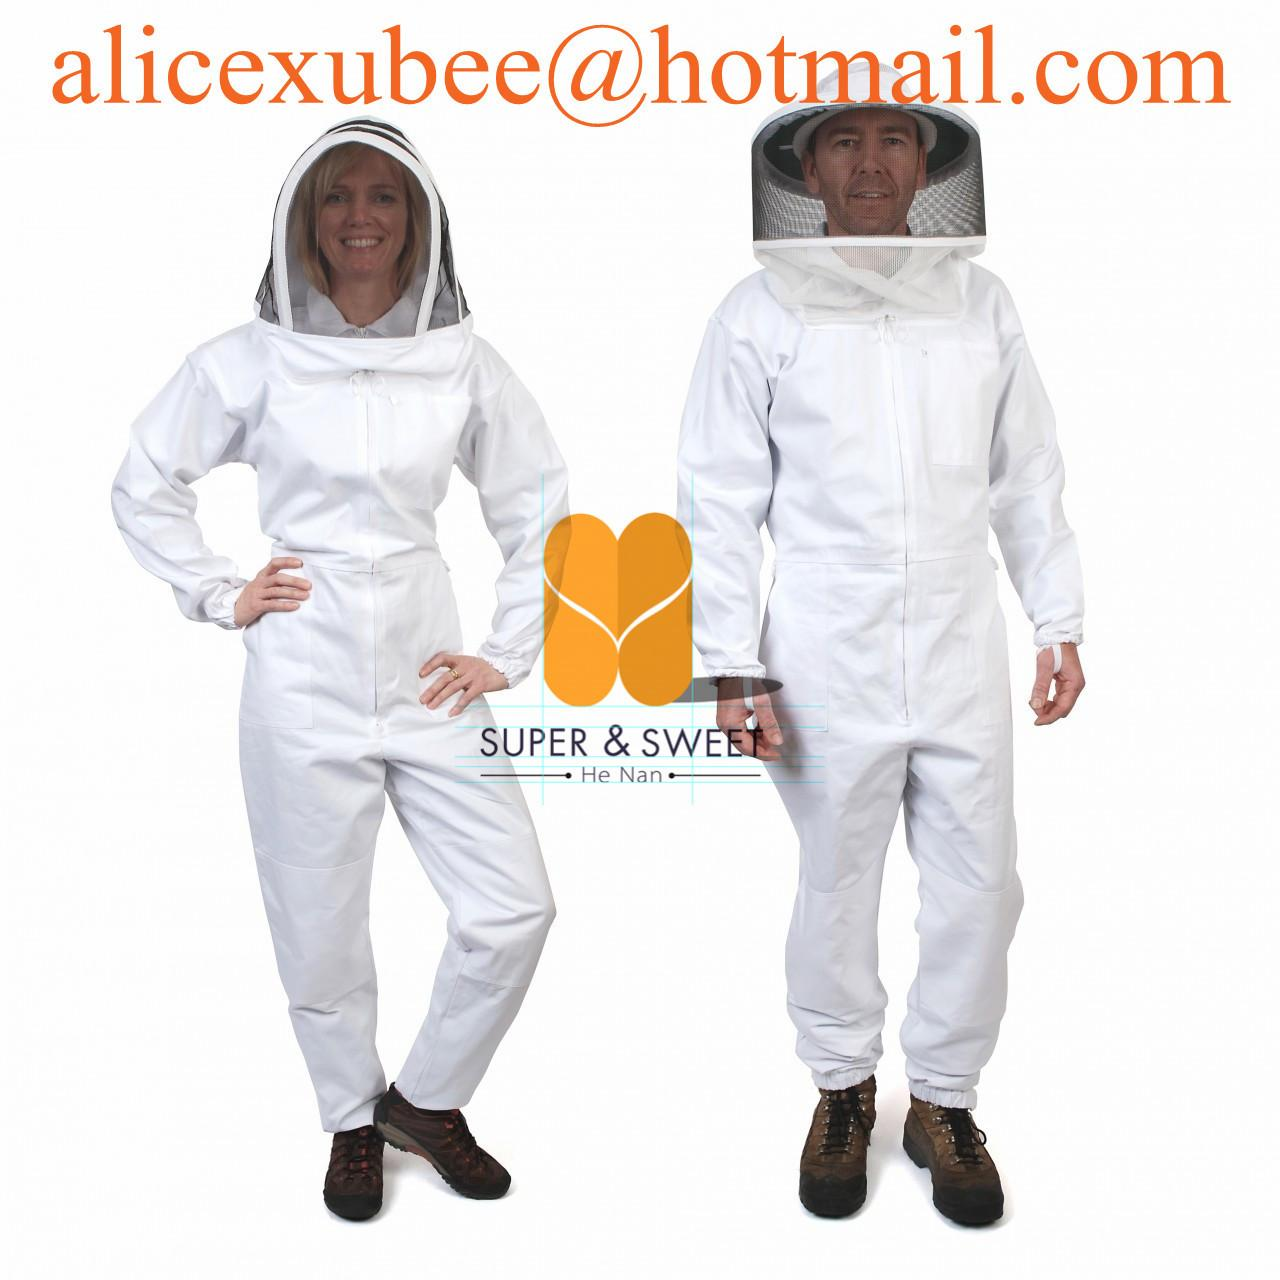 Buy Professional-grade Bee suits, Beekeeper suits, Beekeeping Suits at wholesale prices